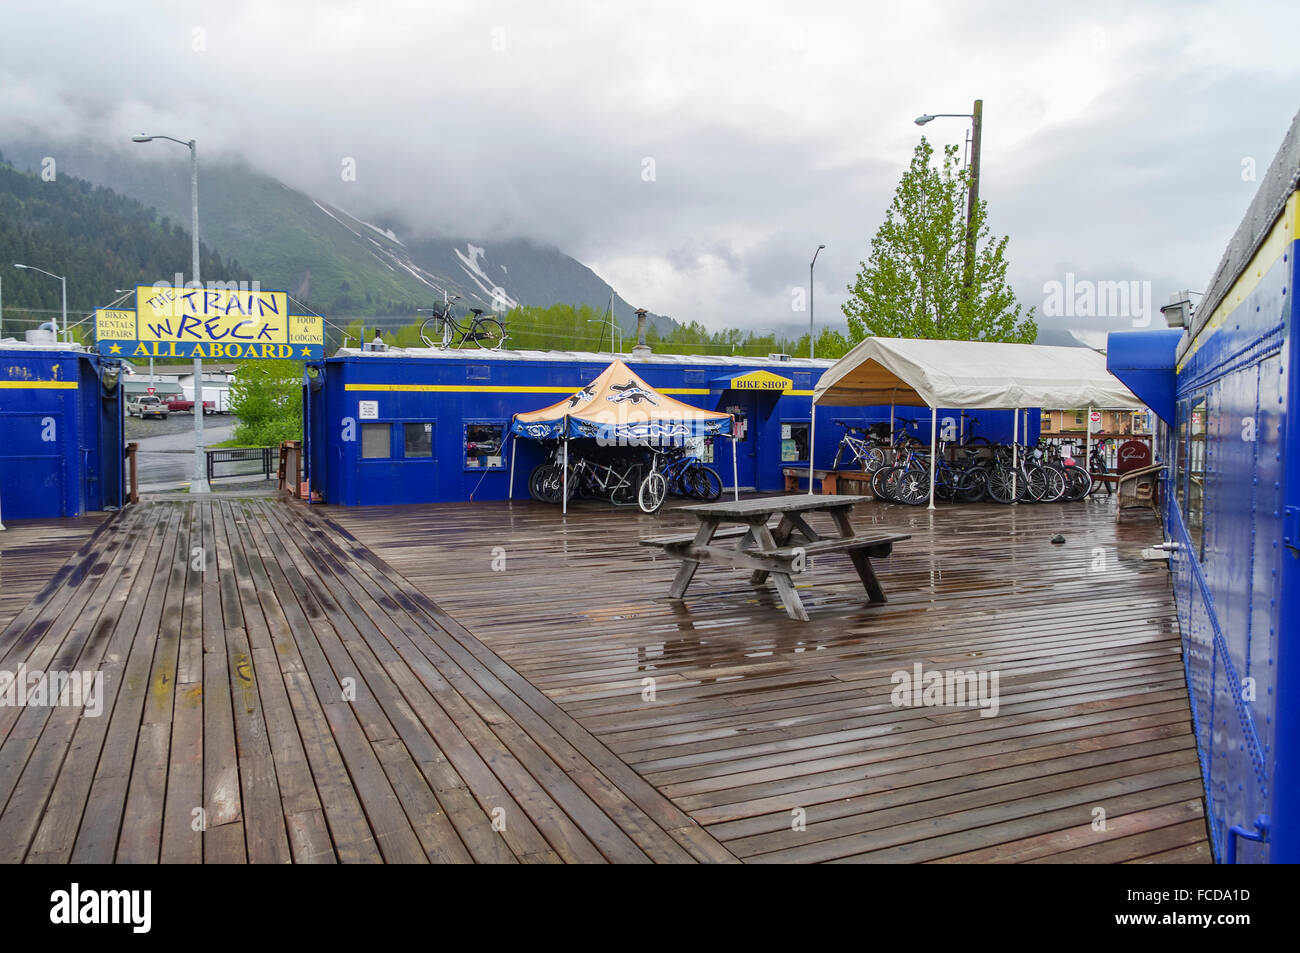 The Train Wreck in Seward, Alaska, United States. Old Alaska Railroad coaches reused as small shops and a restaurant. - Stock Image